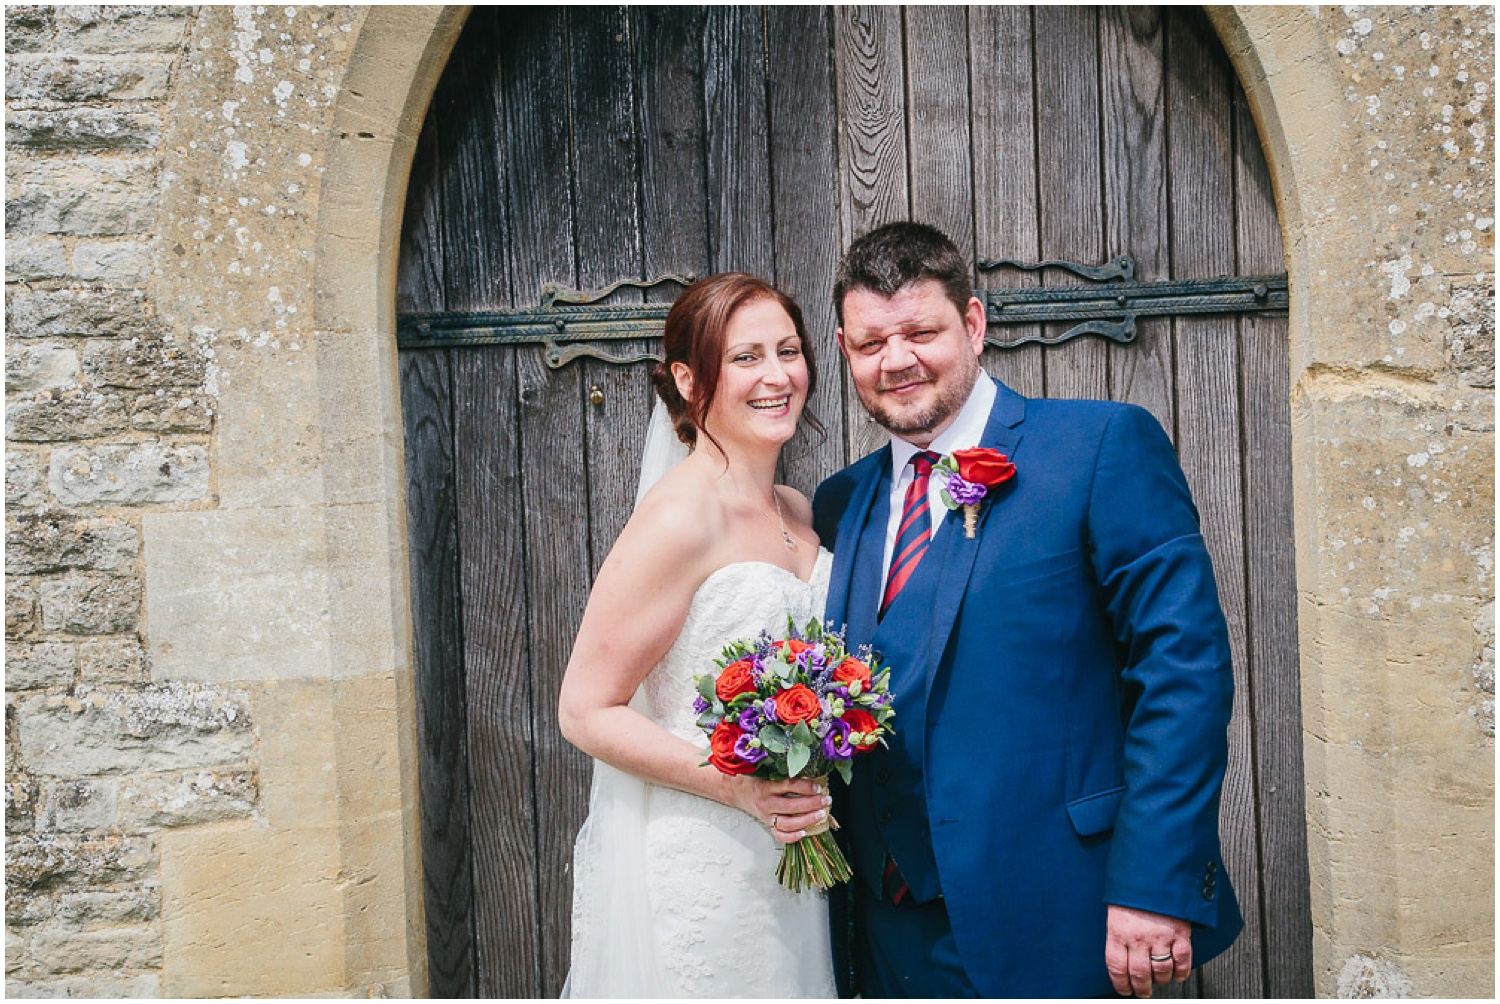 Catherine-Photography-Wedding-Witney-Oxfordshire_0014.jpg